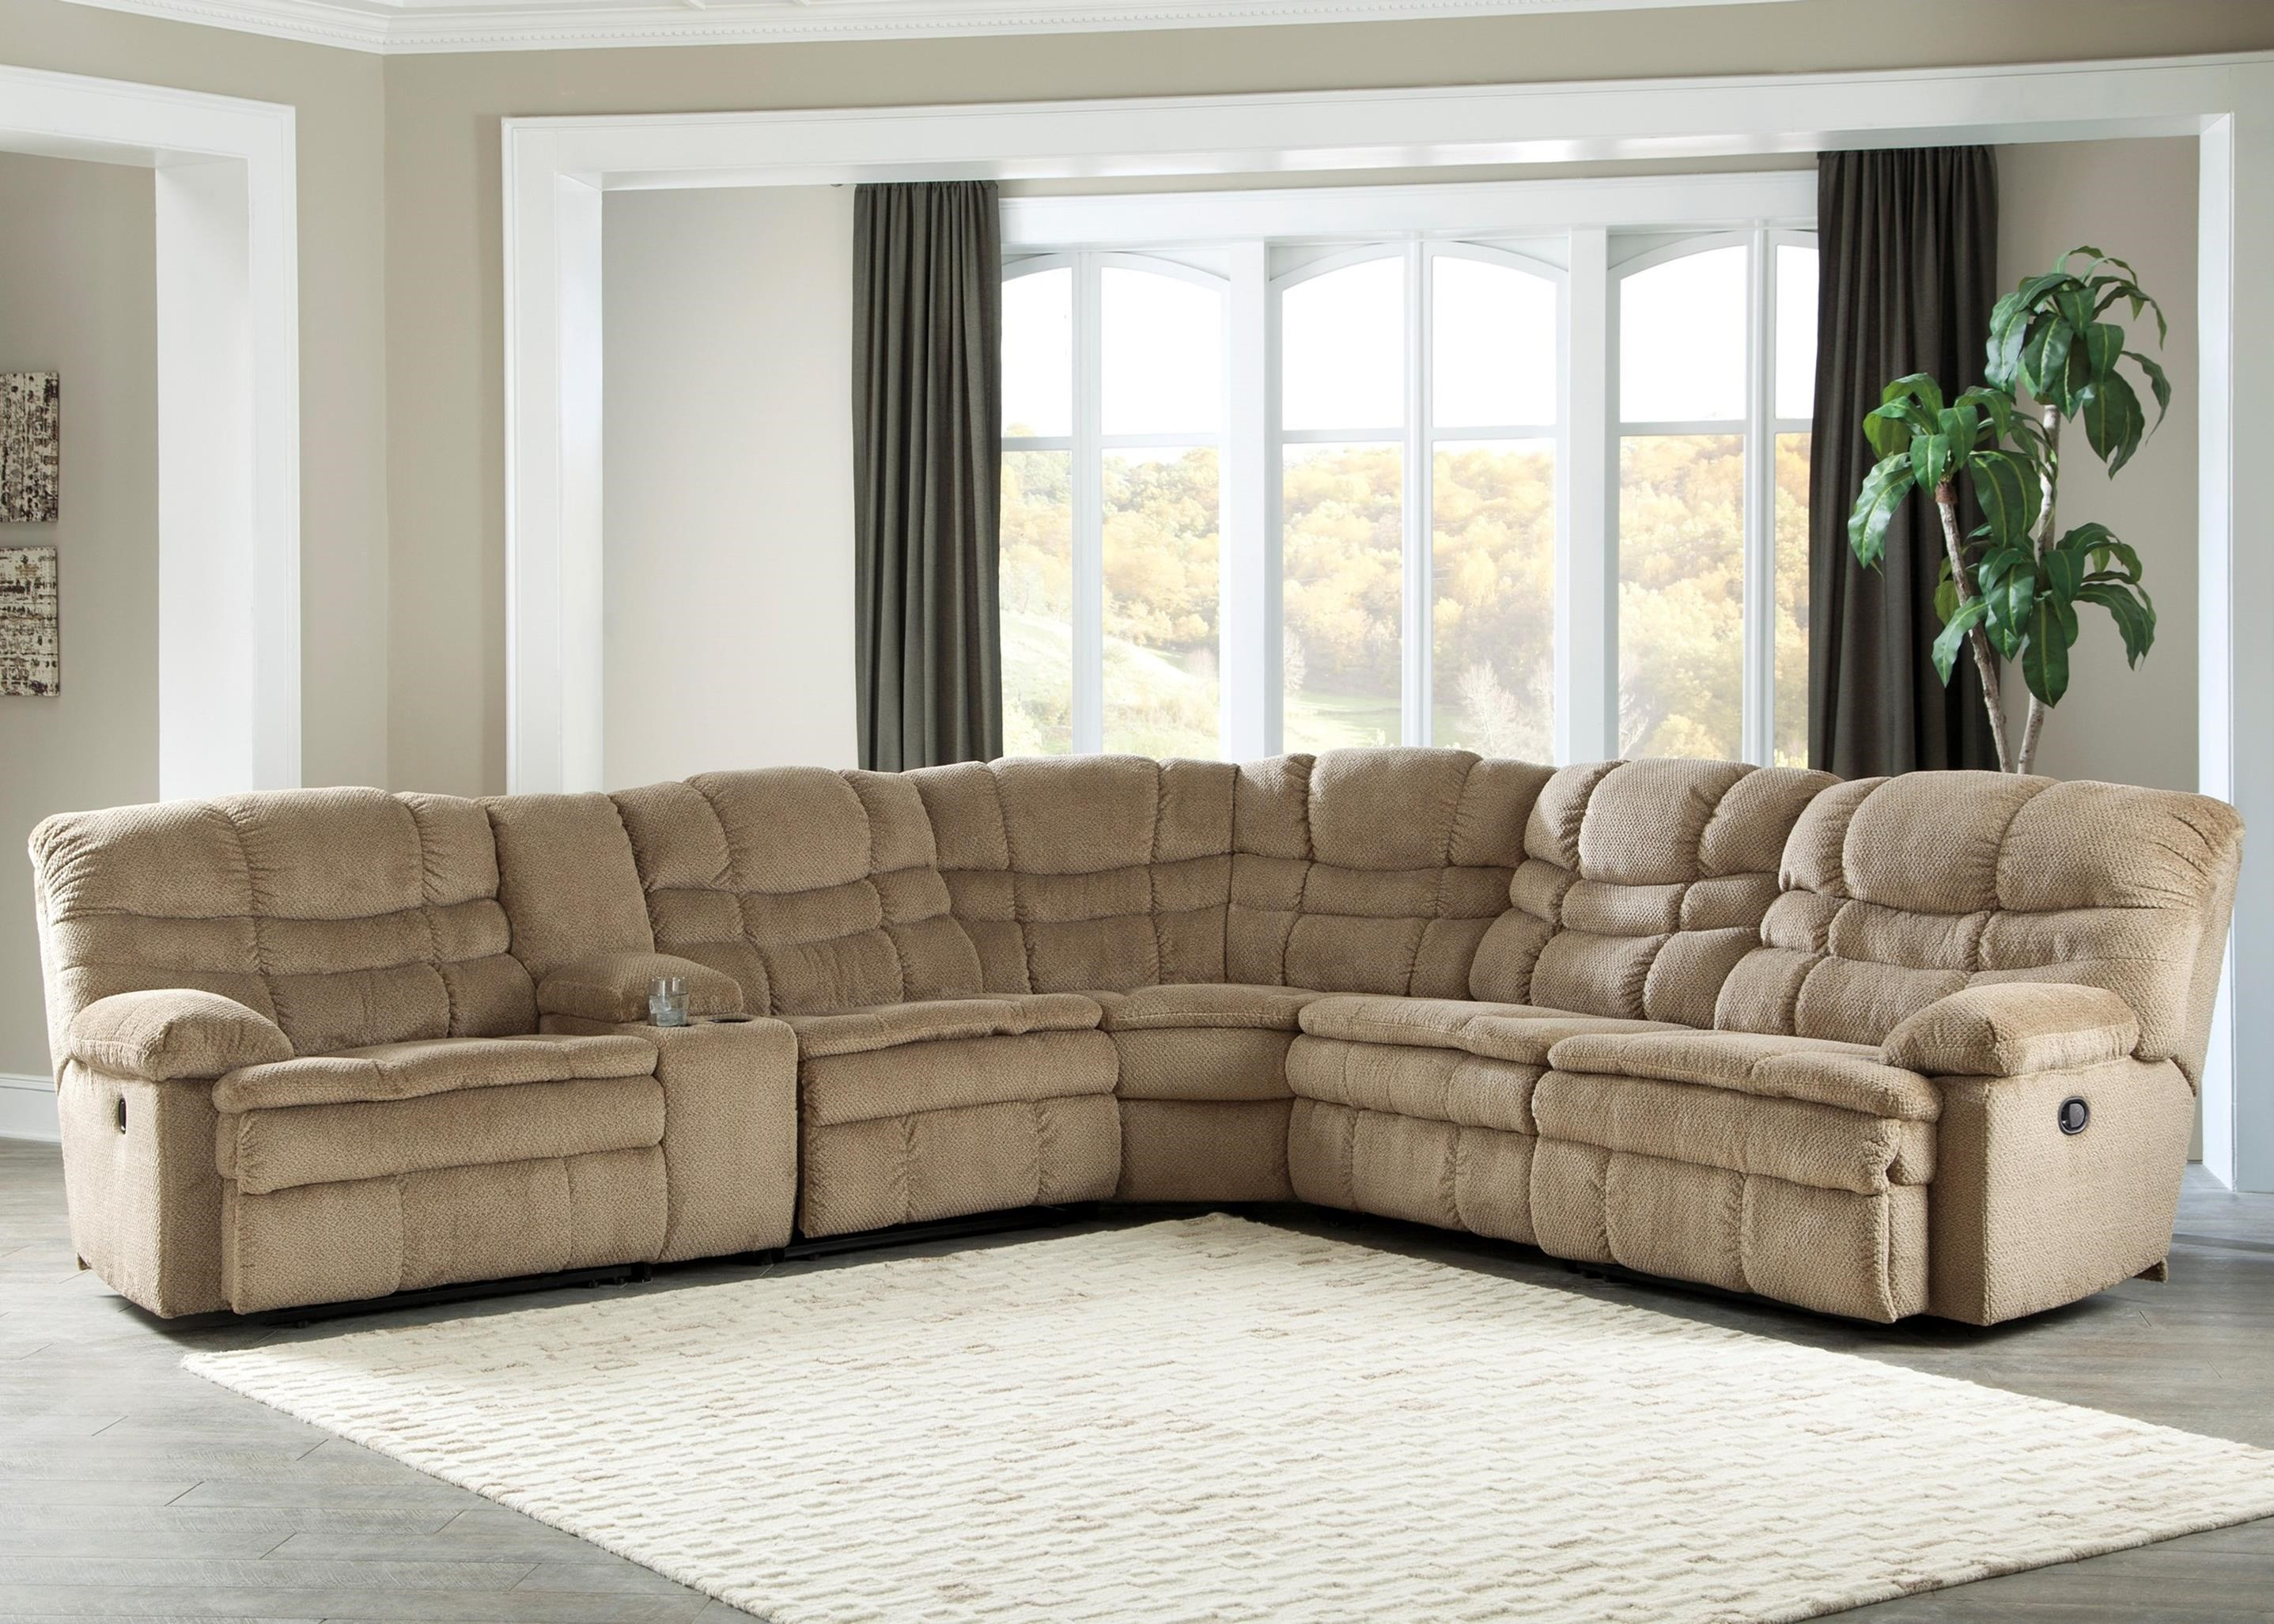 Signature Design by Ashley Zavion 6Pc Recl Sectional w/ Storage Console - Item Number: 6630340+57+19+77+46+41